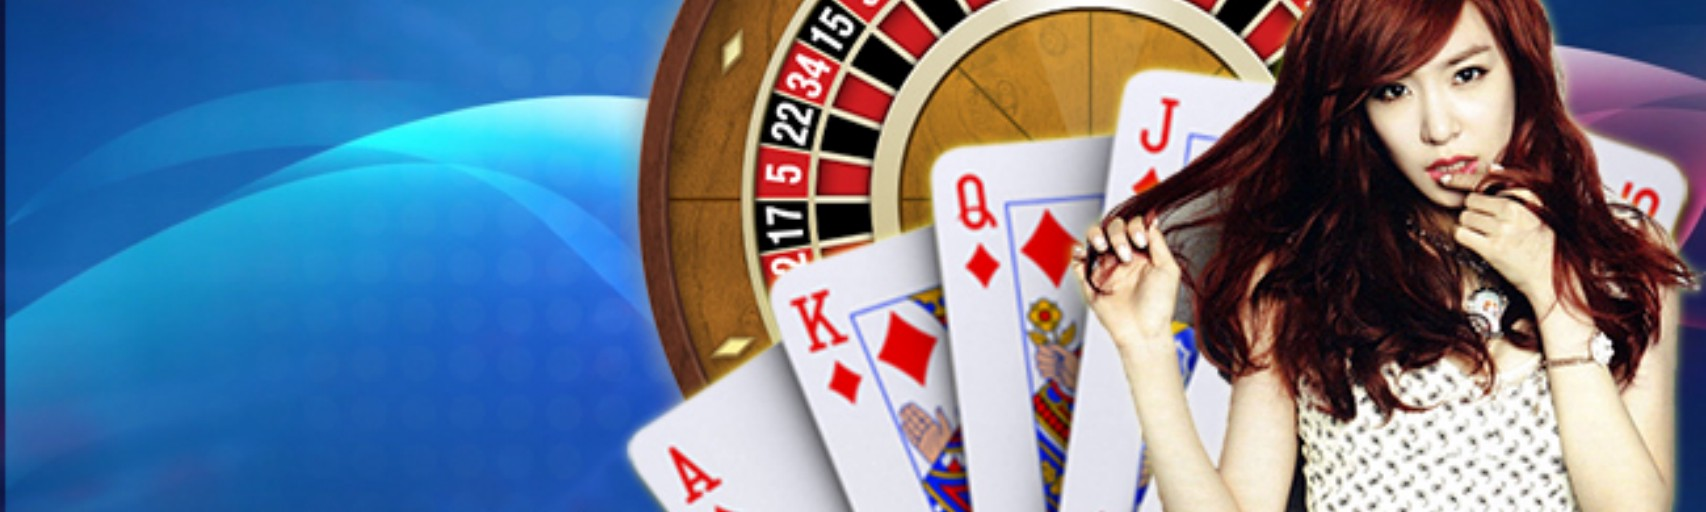 Dirty Info About Gambling Revealed